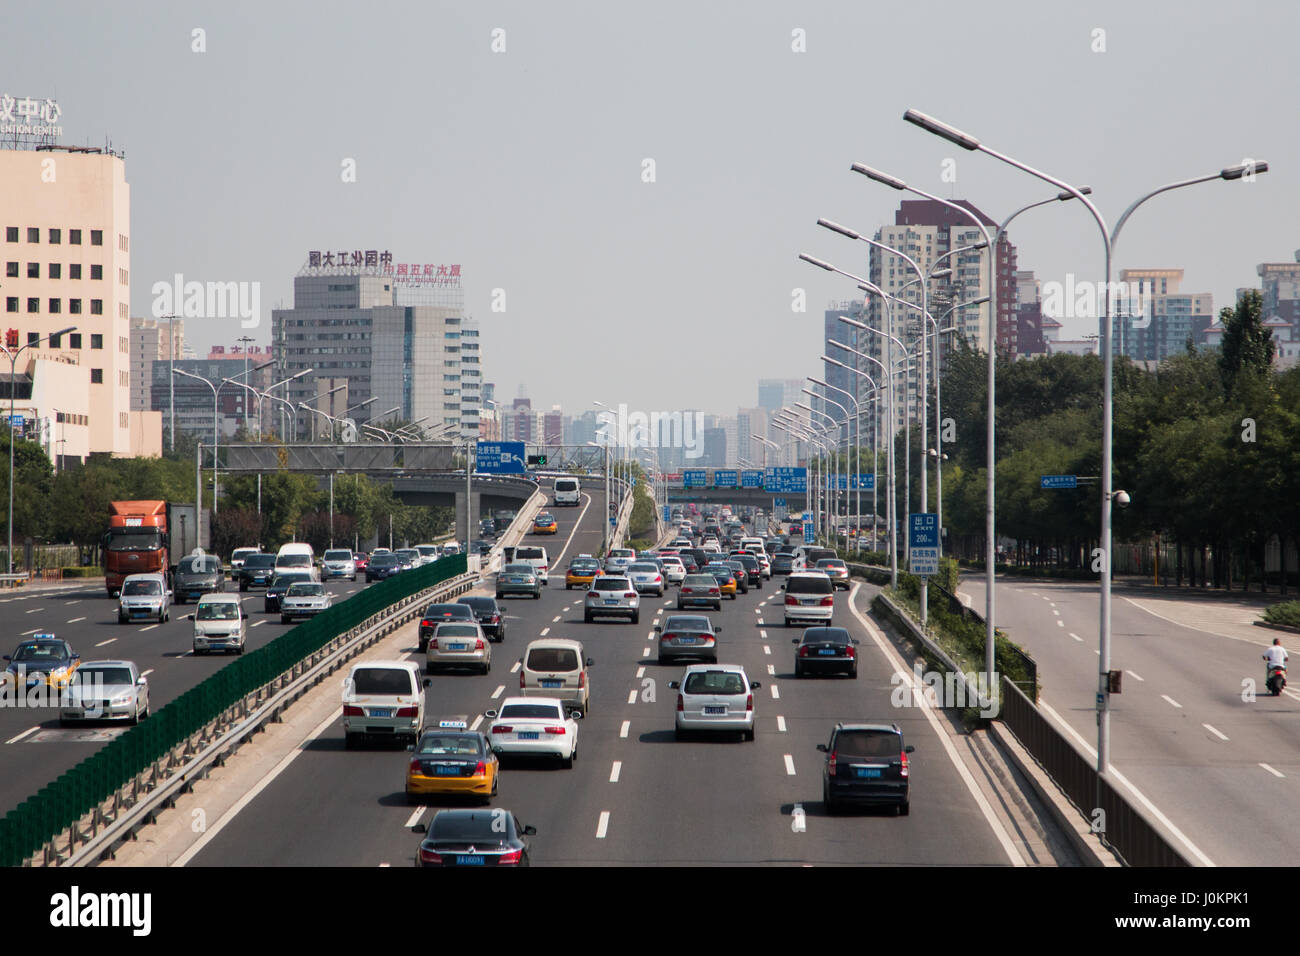 The rush hour chaos in Beijing taken from the Olympic park - Stock Image